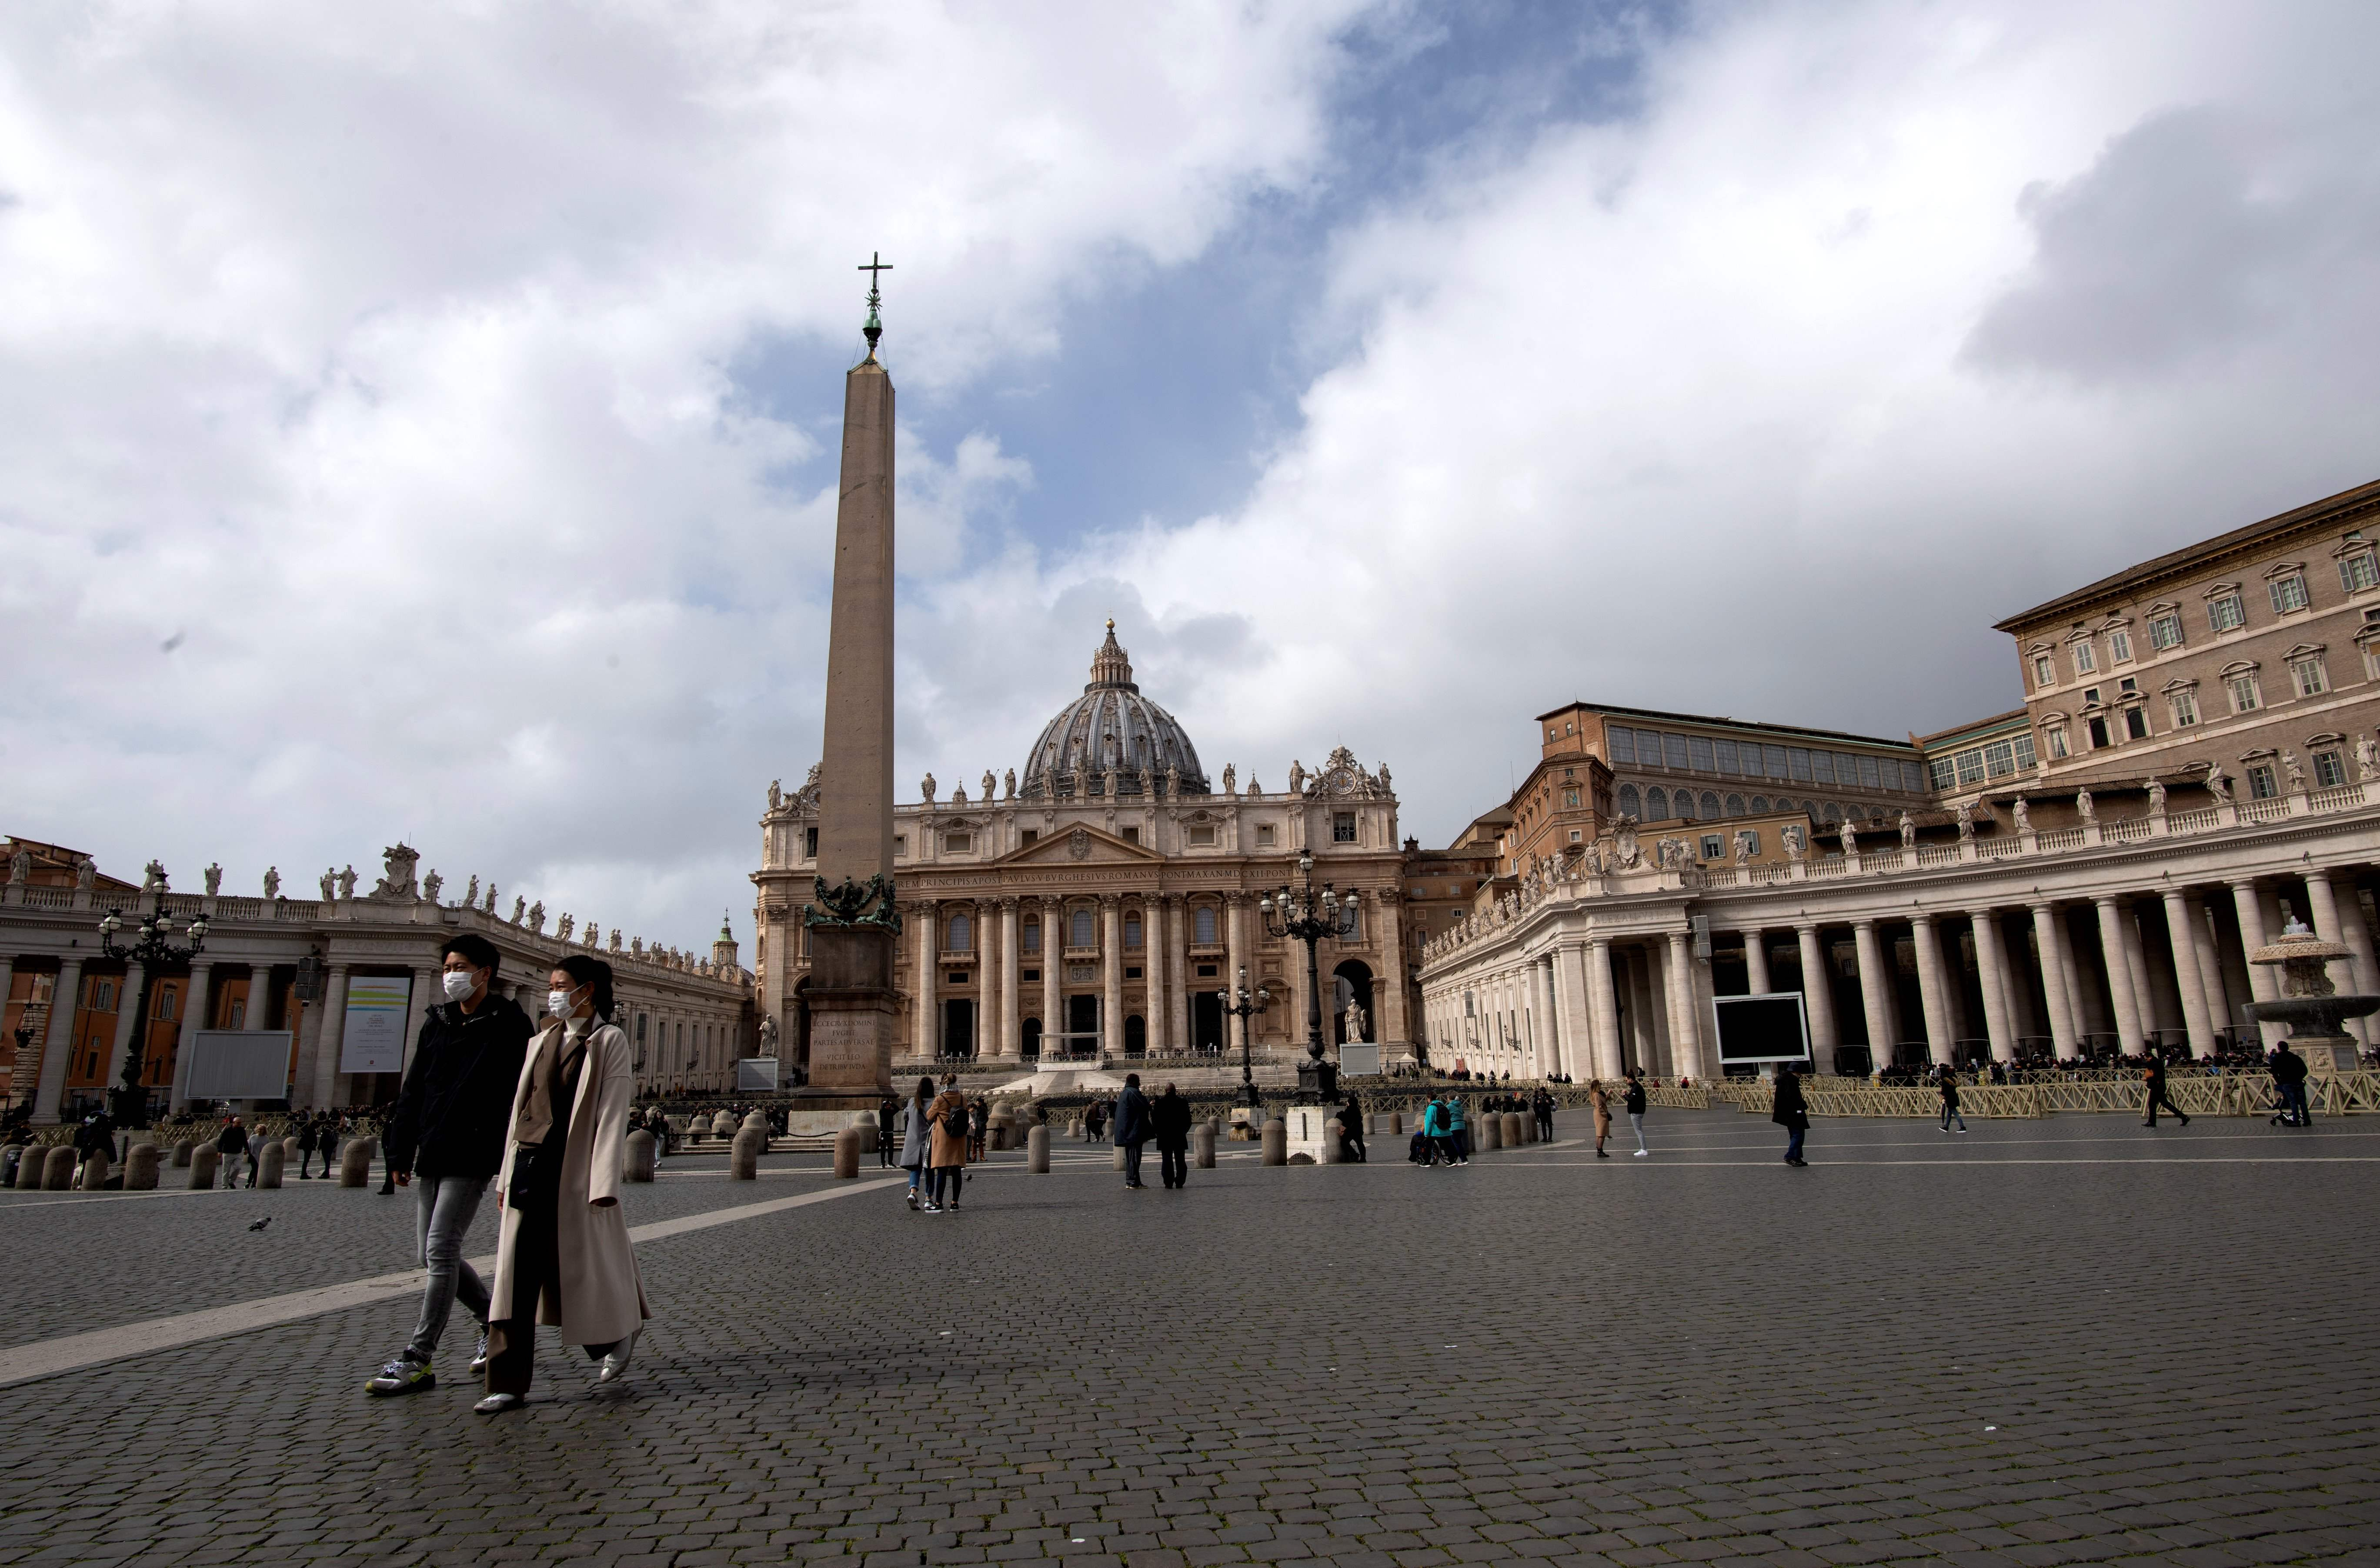 Tourists wearing a protective mask walk in St. Peter's Square at the Vatican in Rome on Tuesday.